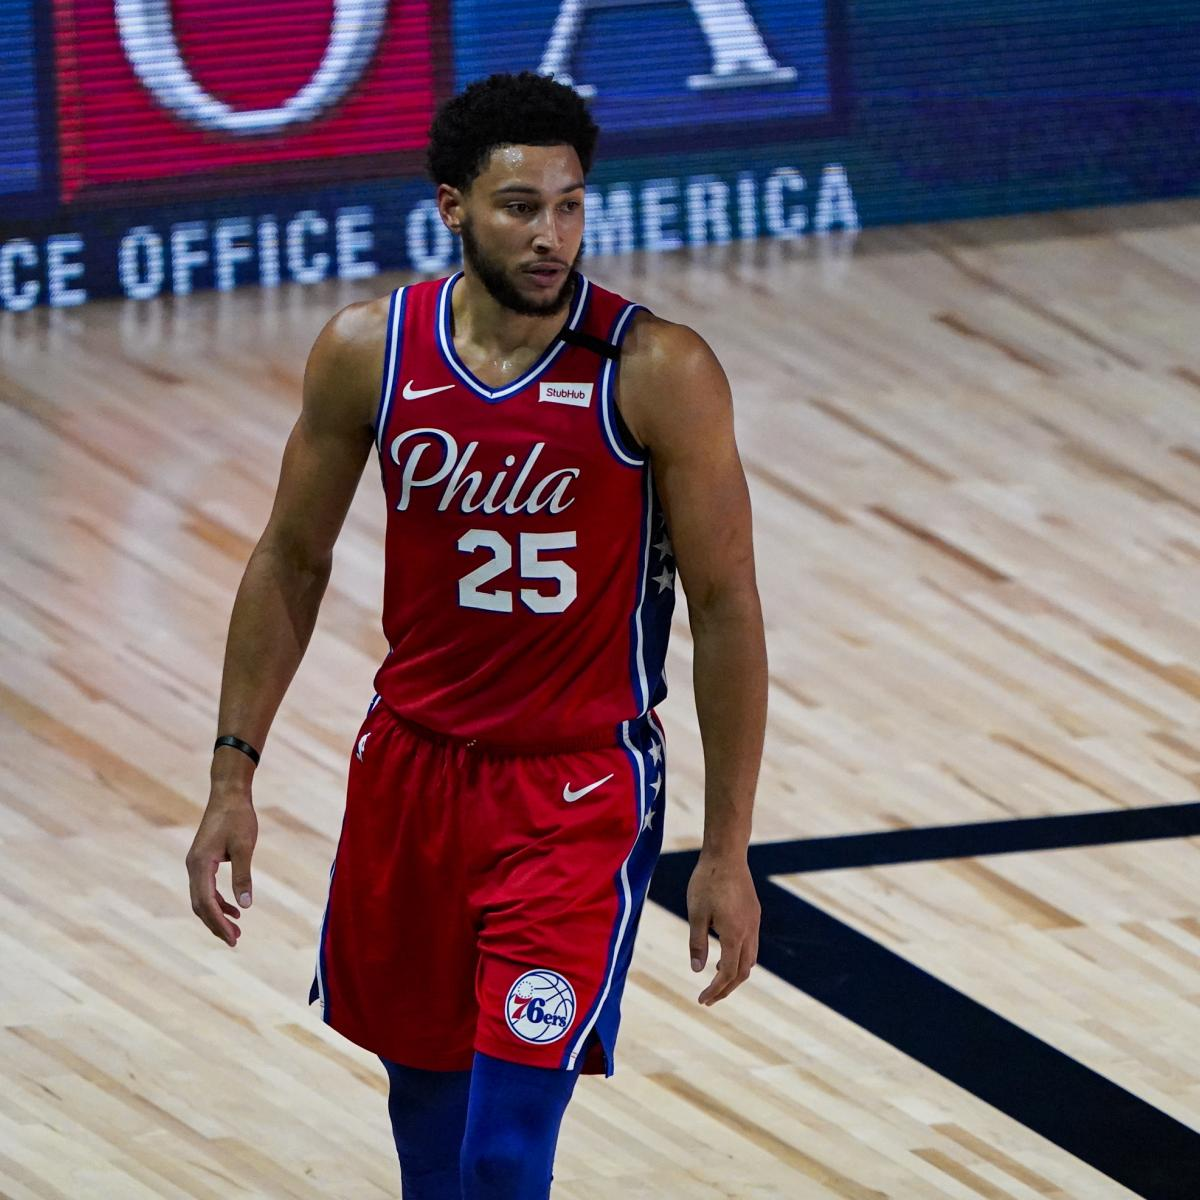 76ers' Ben Simmons Says Team Had Issues with Accountability Last Season